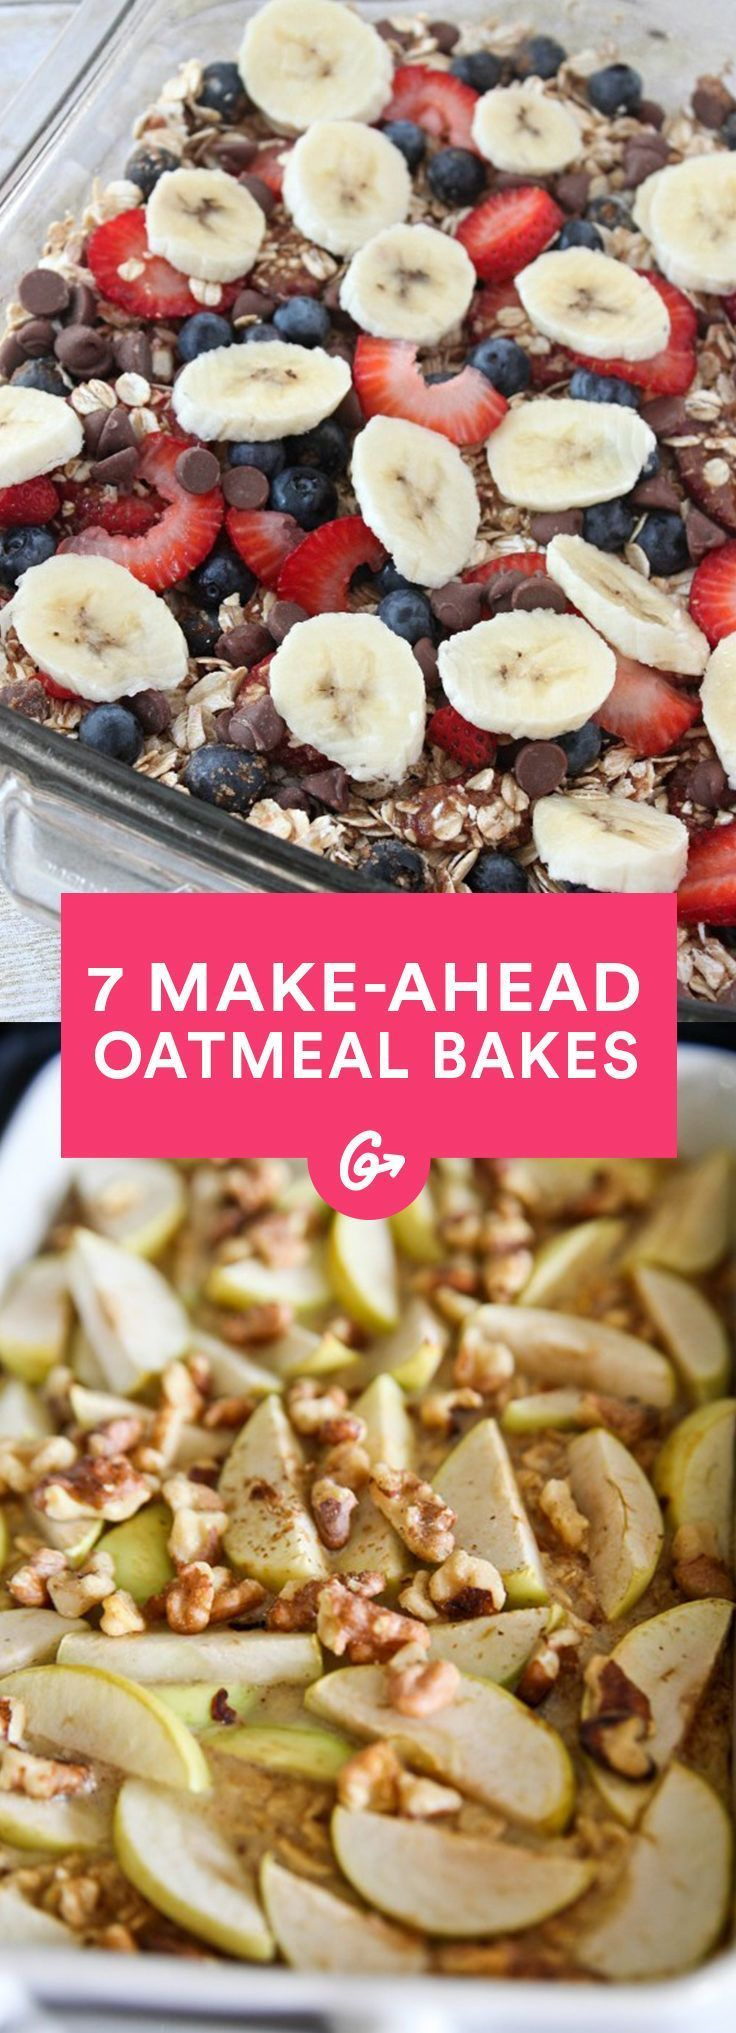 Whip up any one of these, and you've got breakfast covered for the week.